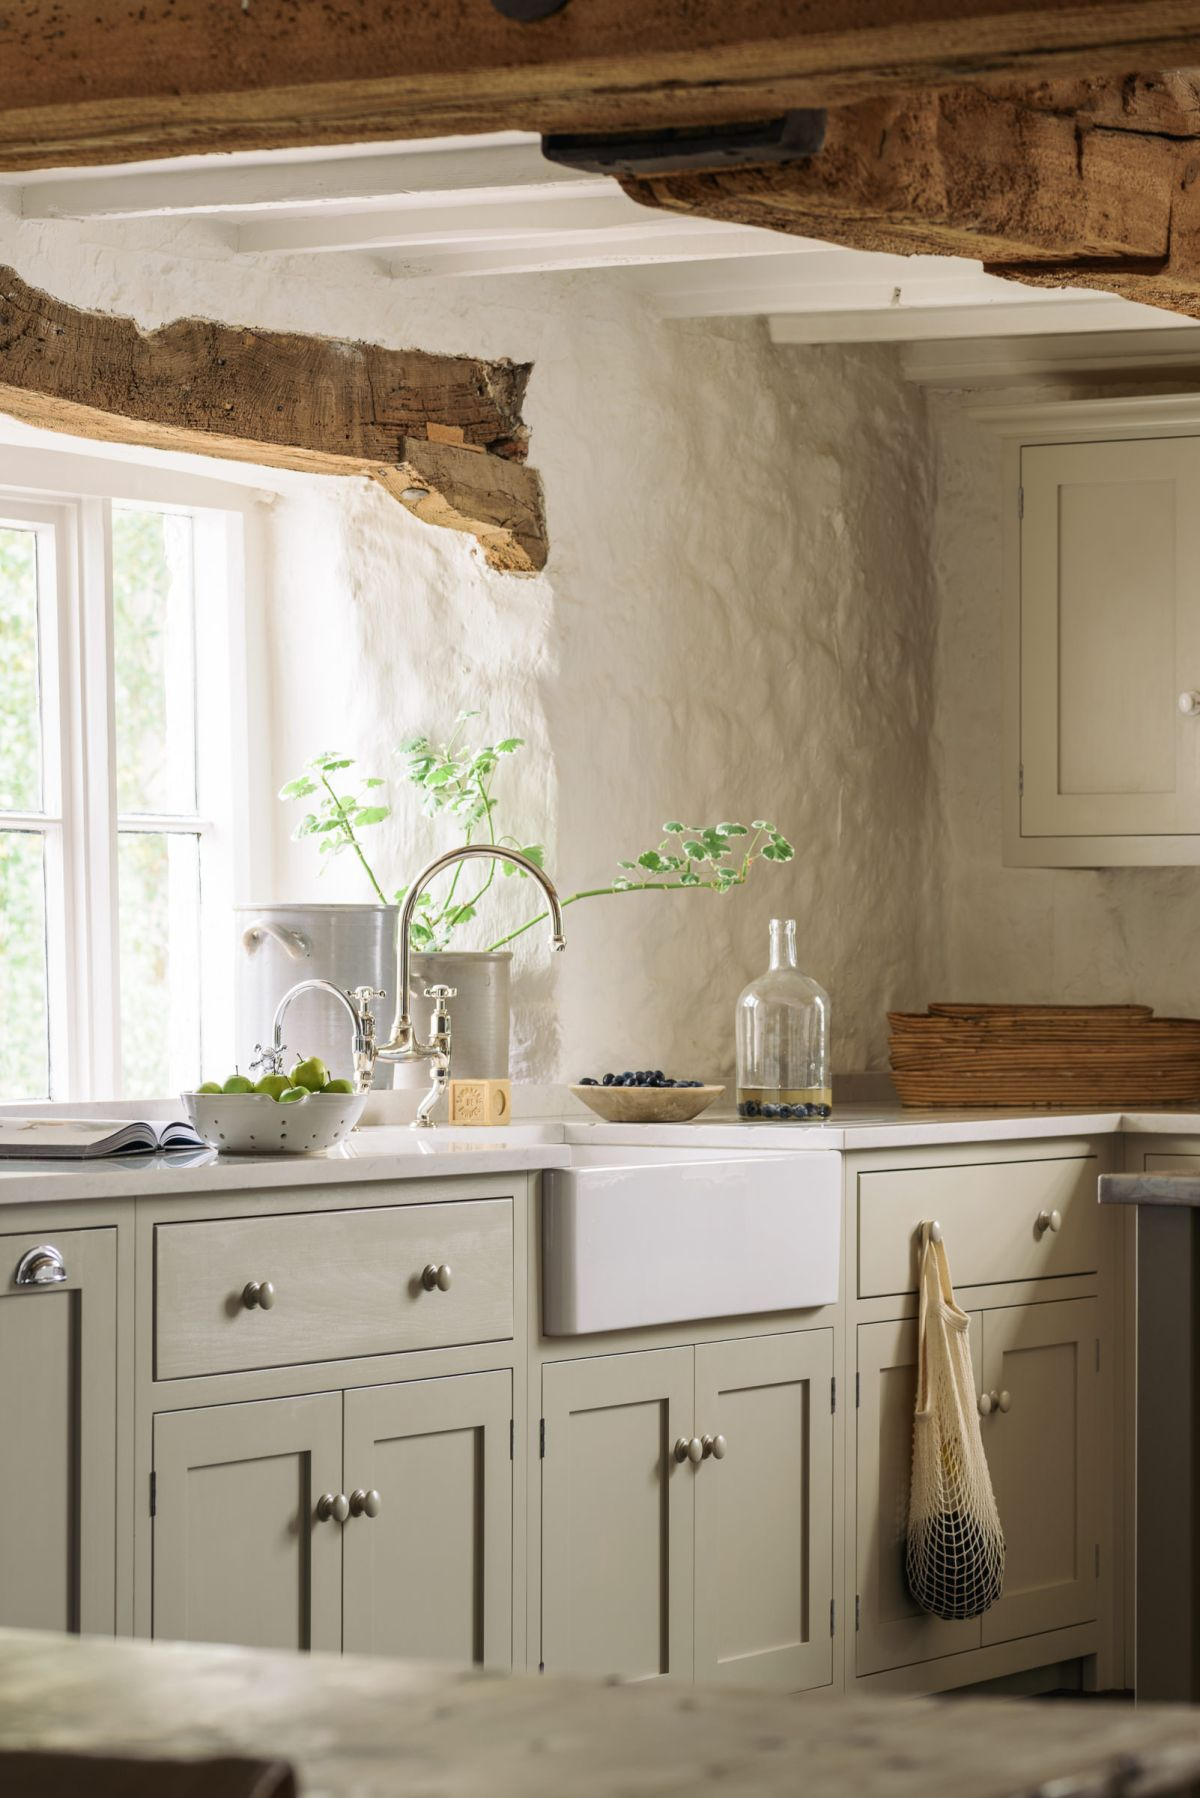 Small Cottage Kitchen Ideas Design Inspiration For Rural Homes Country